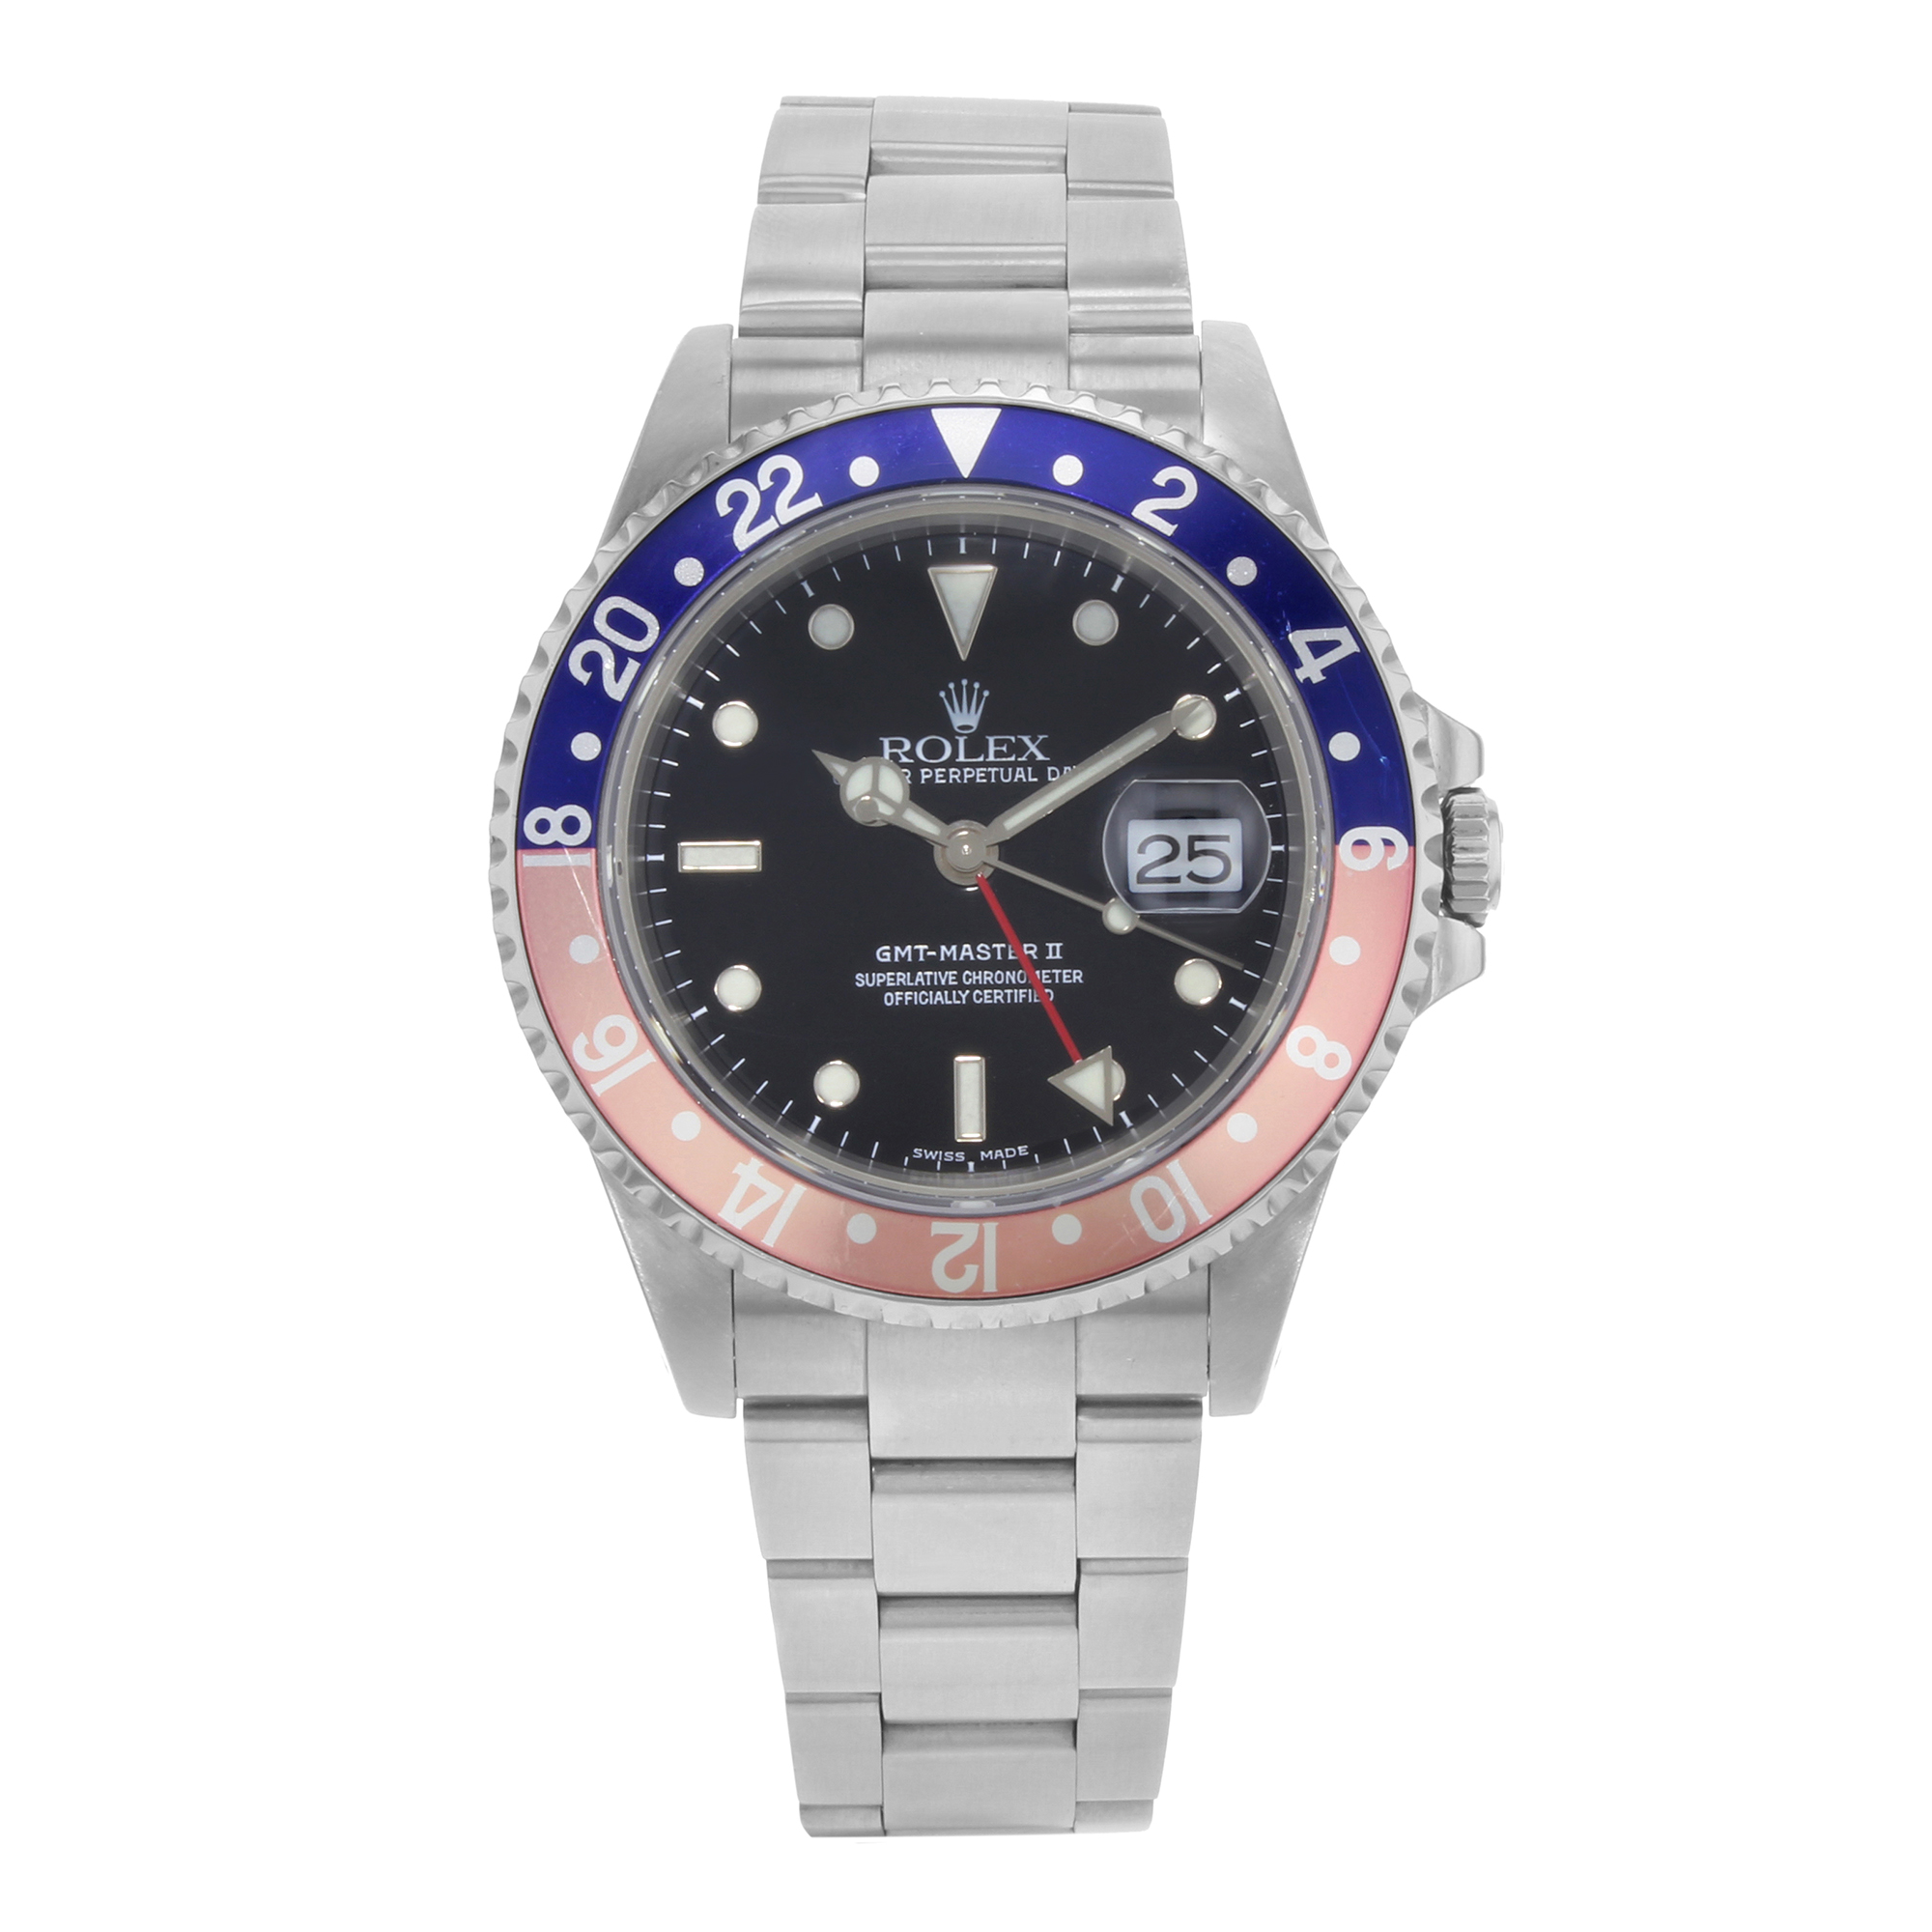 Rolex GMT-Master II 16710 Stainless Steel Automatic Men's...